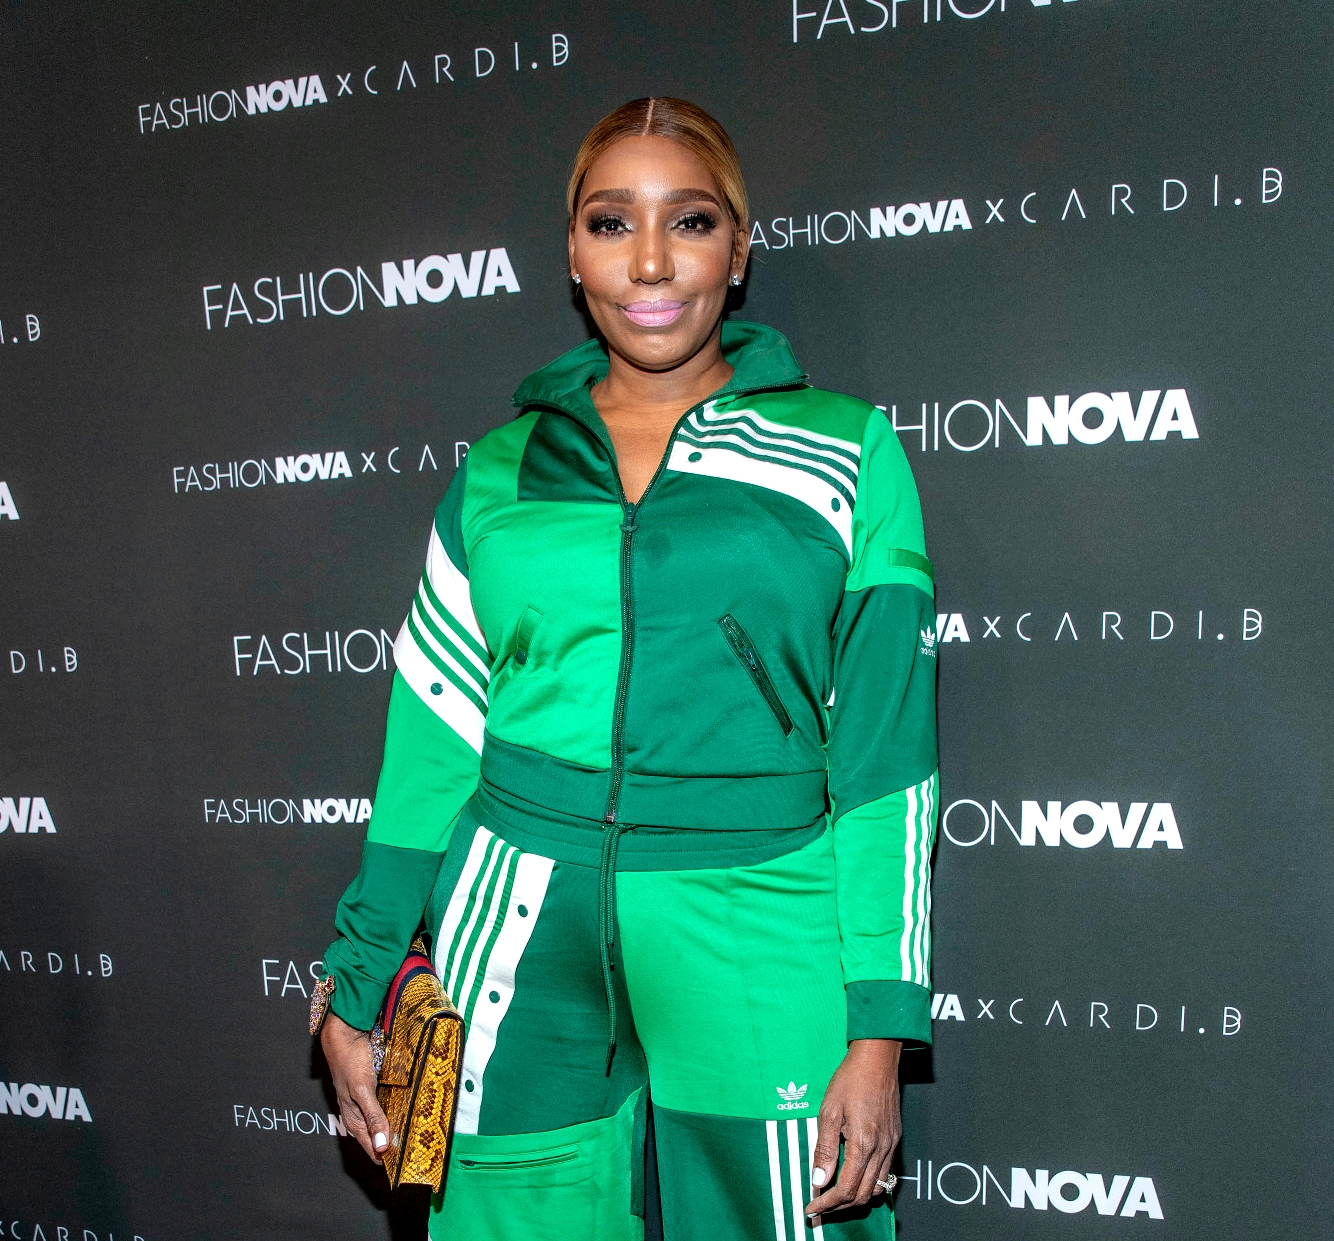 RHOA Star Nene Leakes Was 'Drunk' and 'Unprofessional' During Comedy Tour After Arriving Late